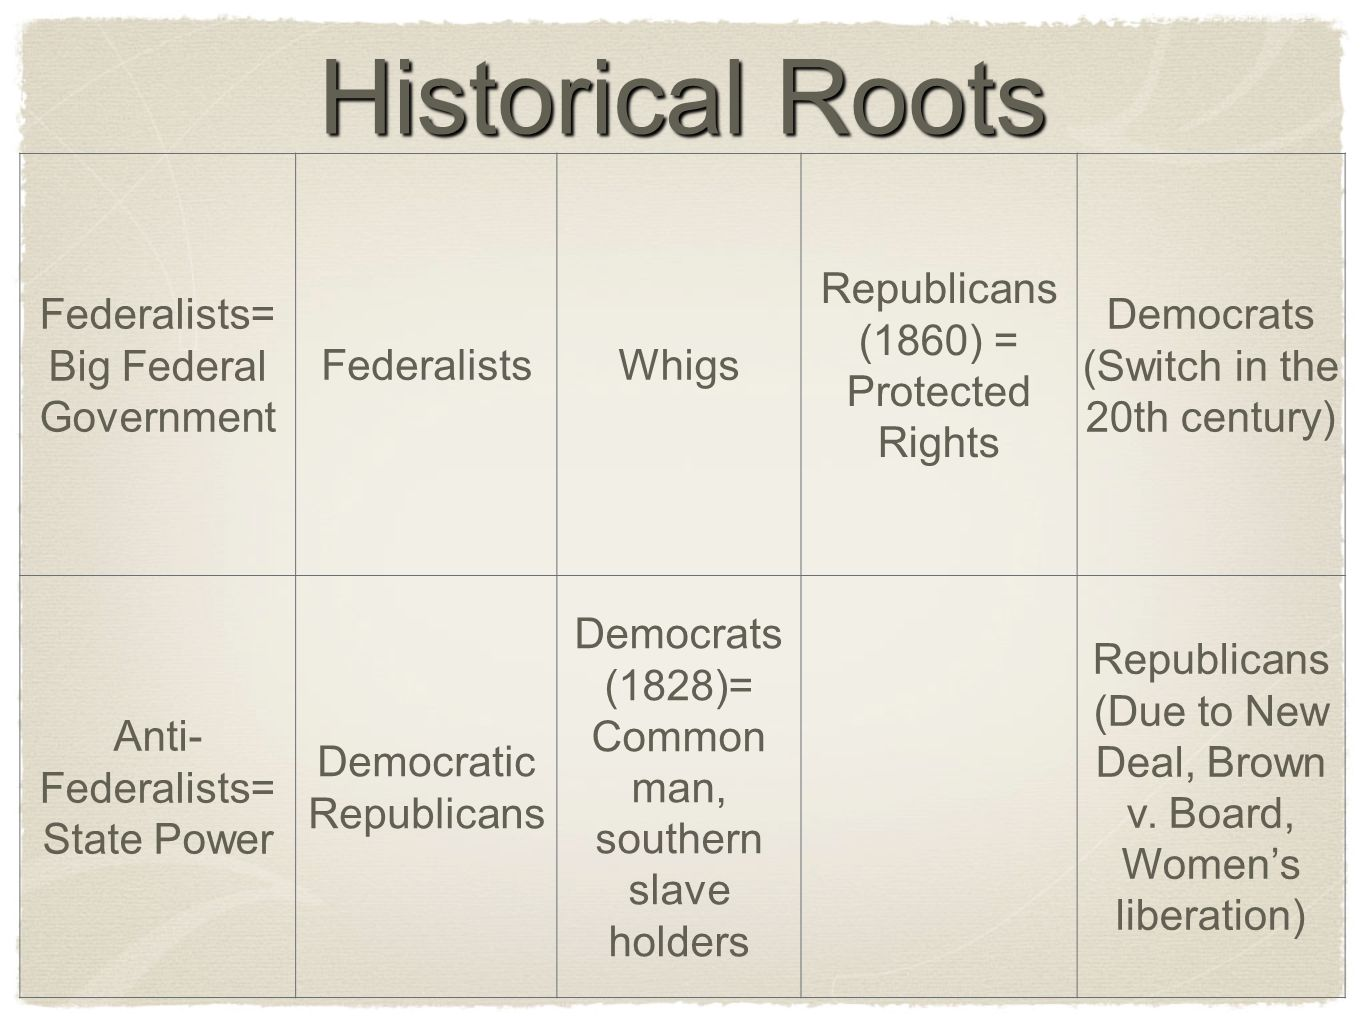 Historical Roots Federalists= Big Federal Government FederalistsWhigs Republicans (1860) = Protected Rights Democrats (Switch in the 20th century) Ant